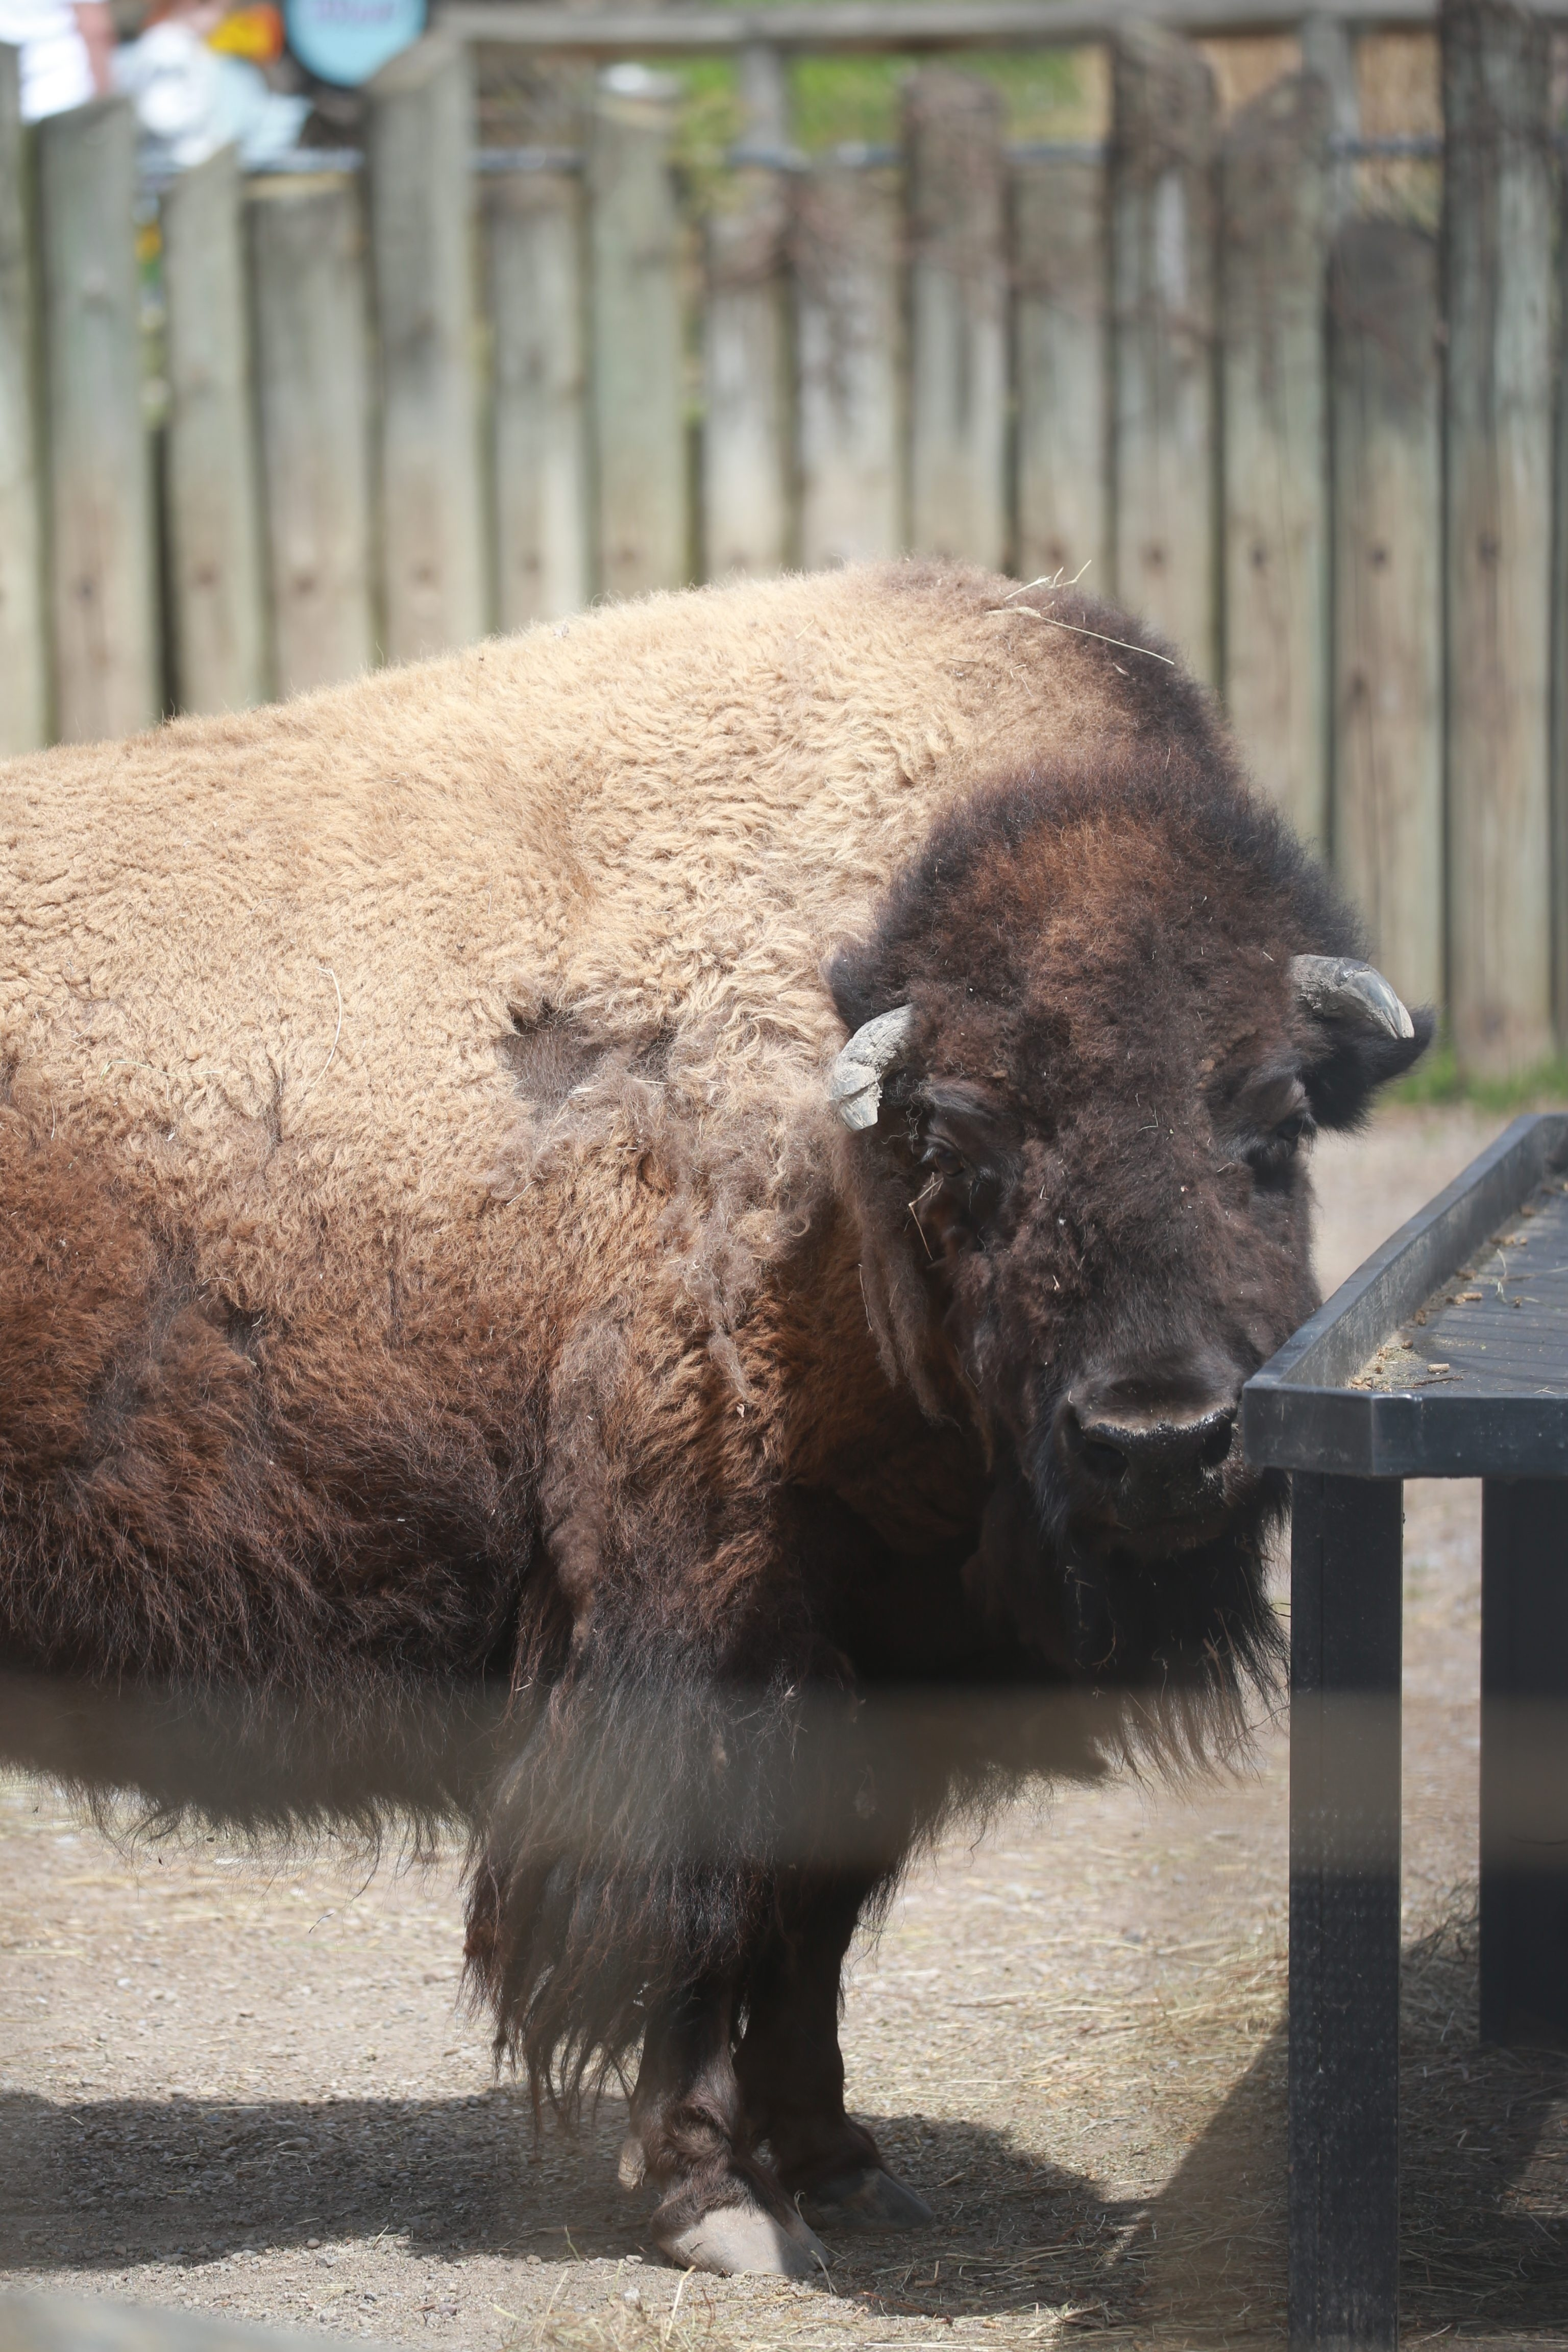 Bison are a big part of American history, said Buffalo Zoo curator Malia Somervile.